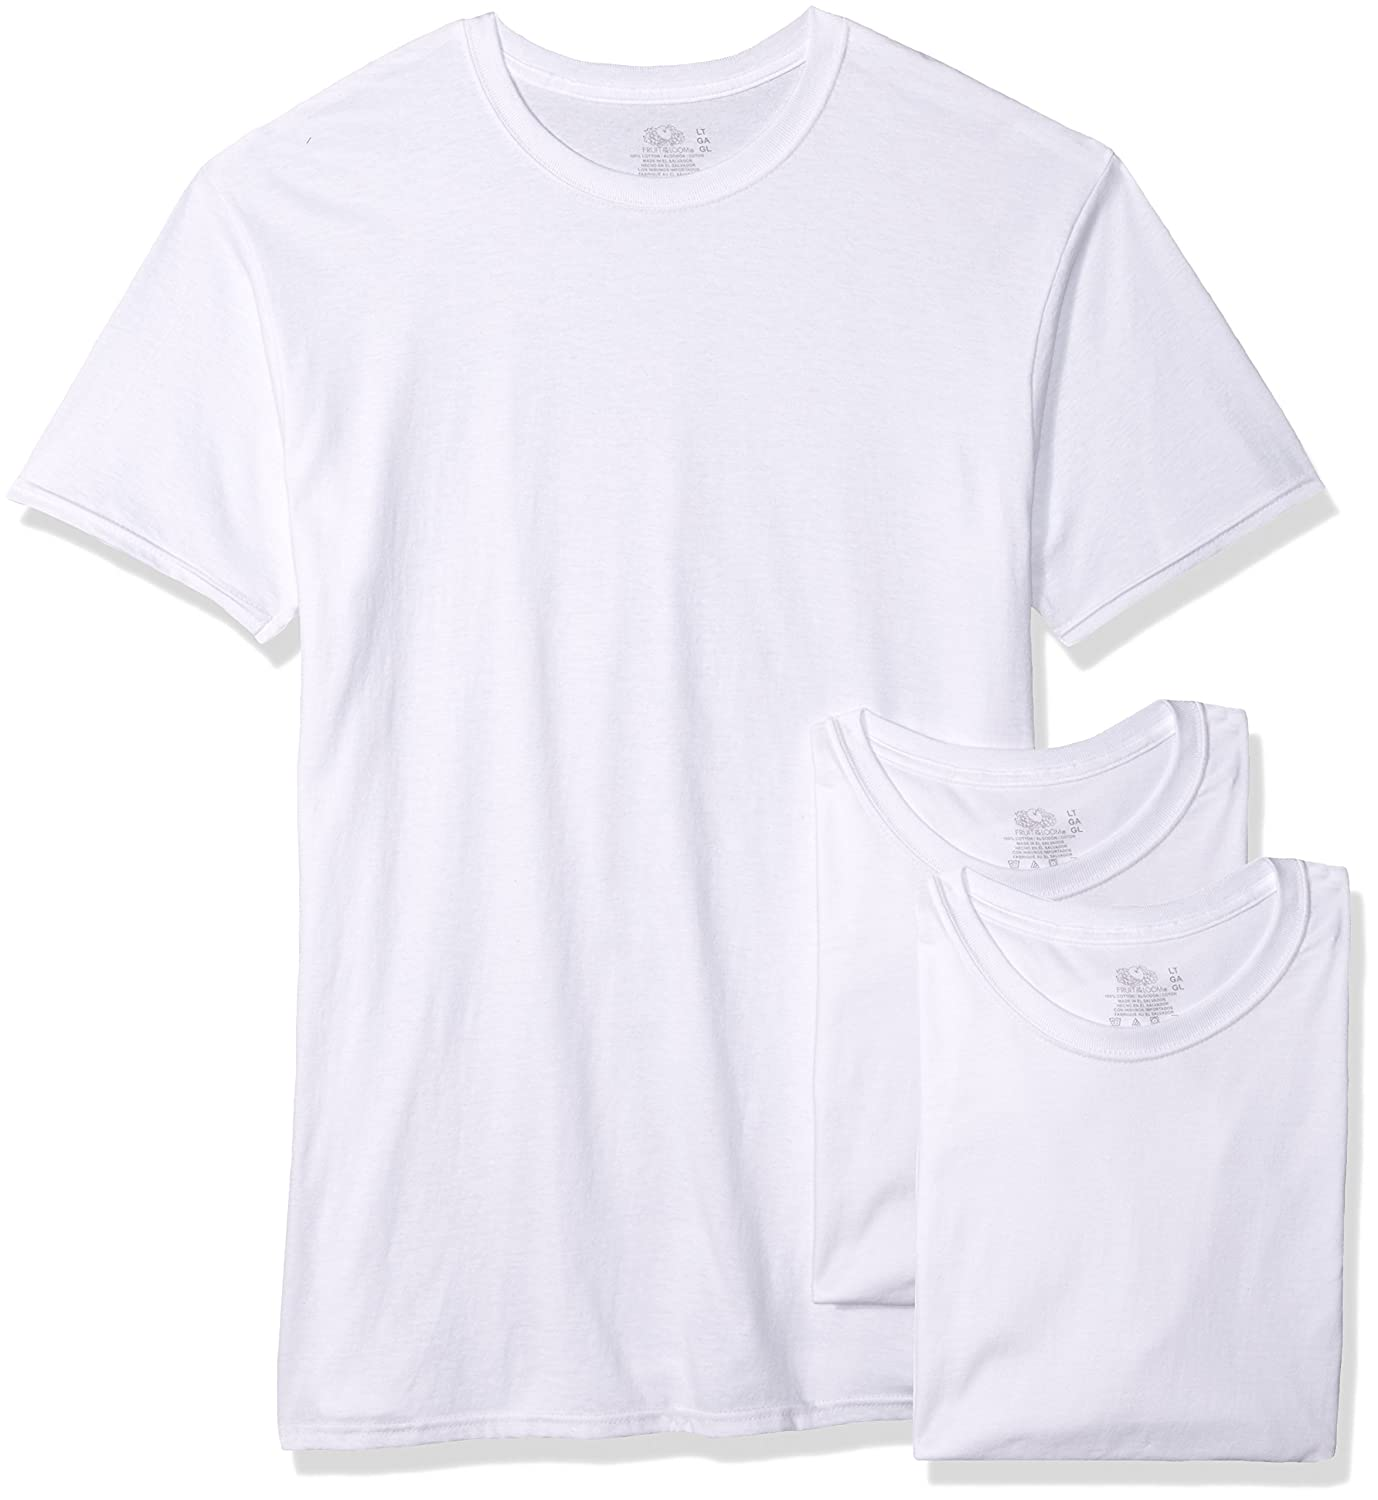 Fruit of the Loom Men's 3-Pack Tall Size Crew-Neck T-Shirt 2790TM